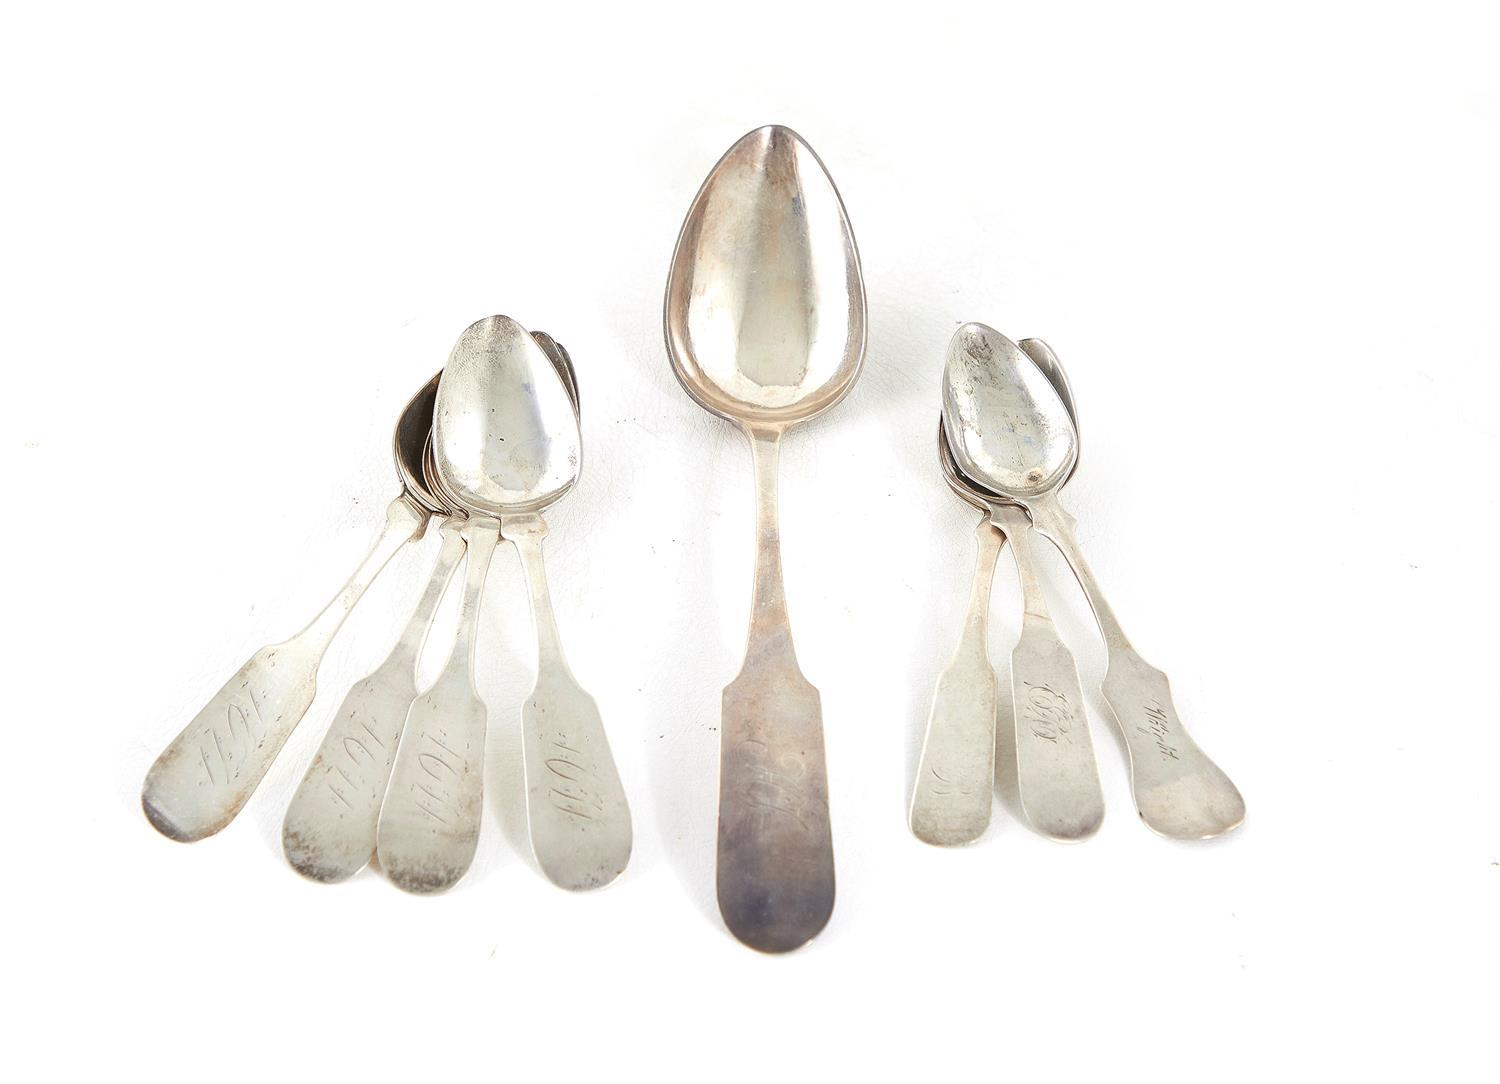 Southern coin silver spoons, New Orleans & Kentucky (8pcs)